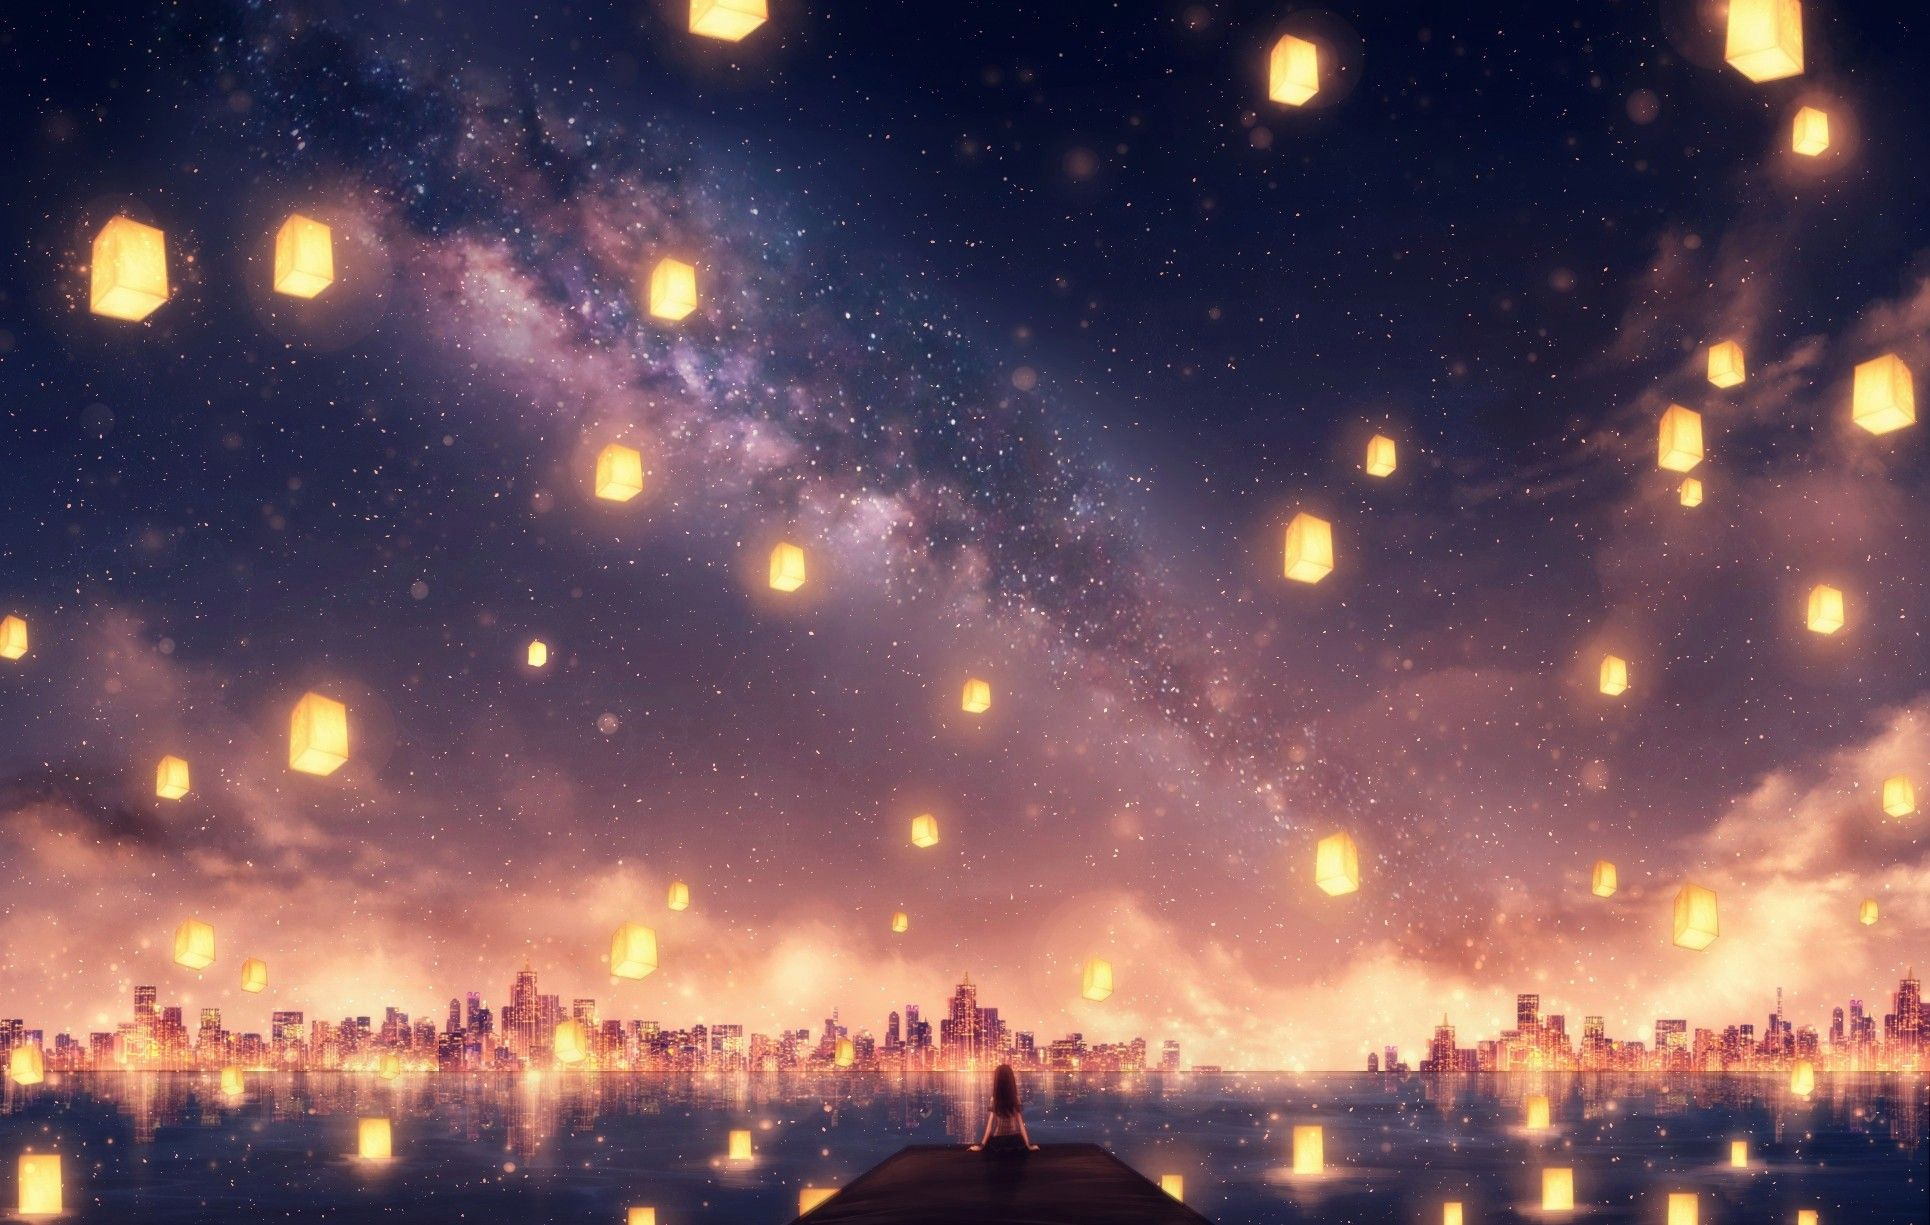 Pin By Alli Kat On And That S Who I Am Anime Scenery